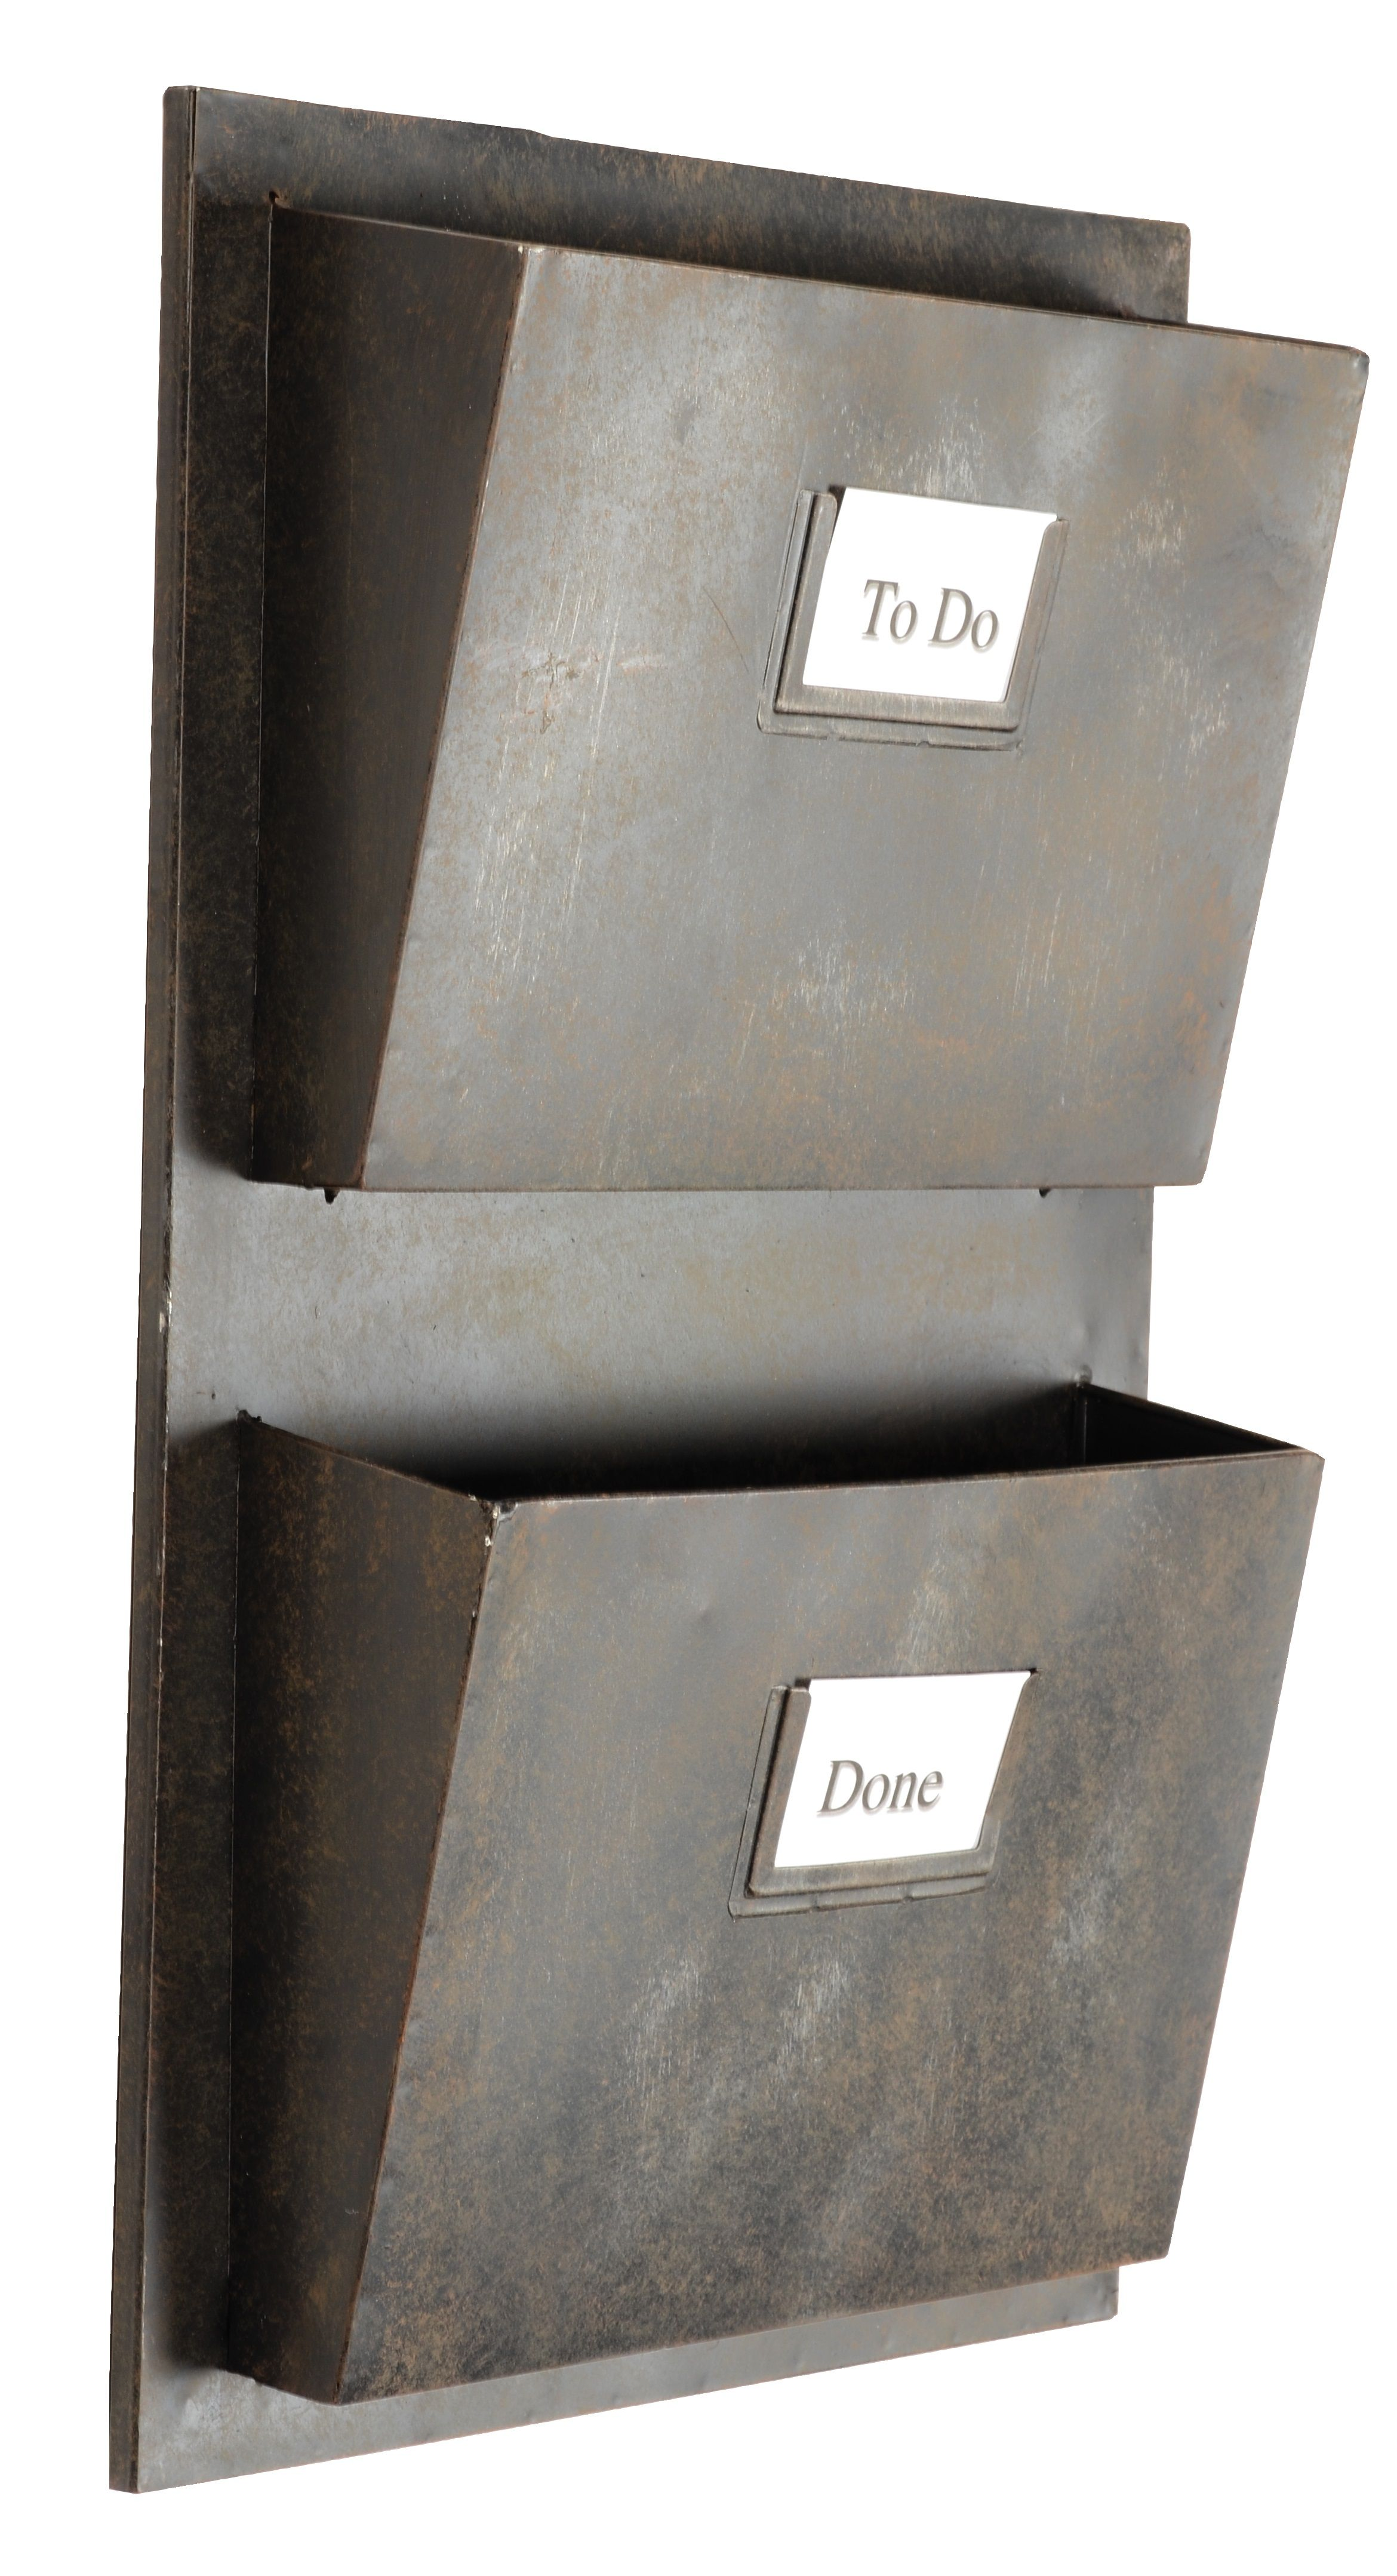 Furnituremaxx.com Rustic Grey Metal Industrial Wall Mounted Mail Organizers  Two Slots